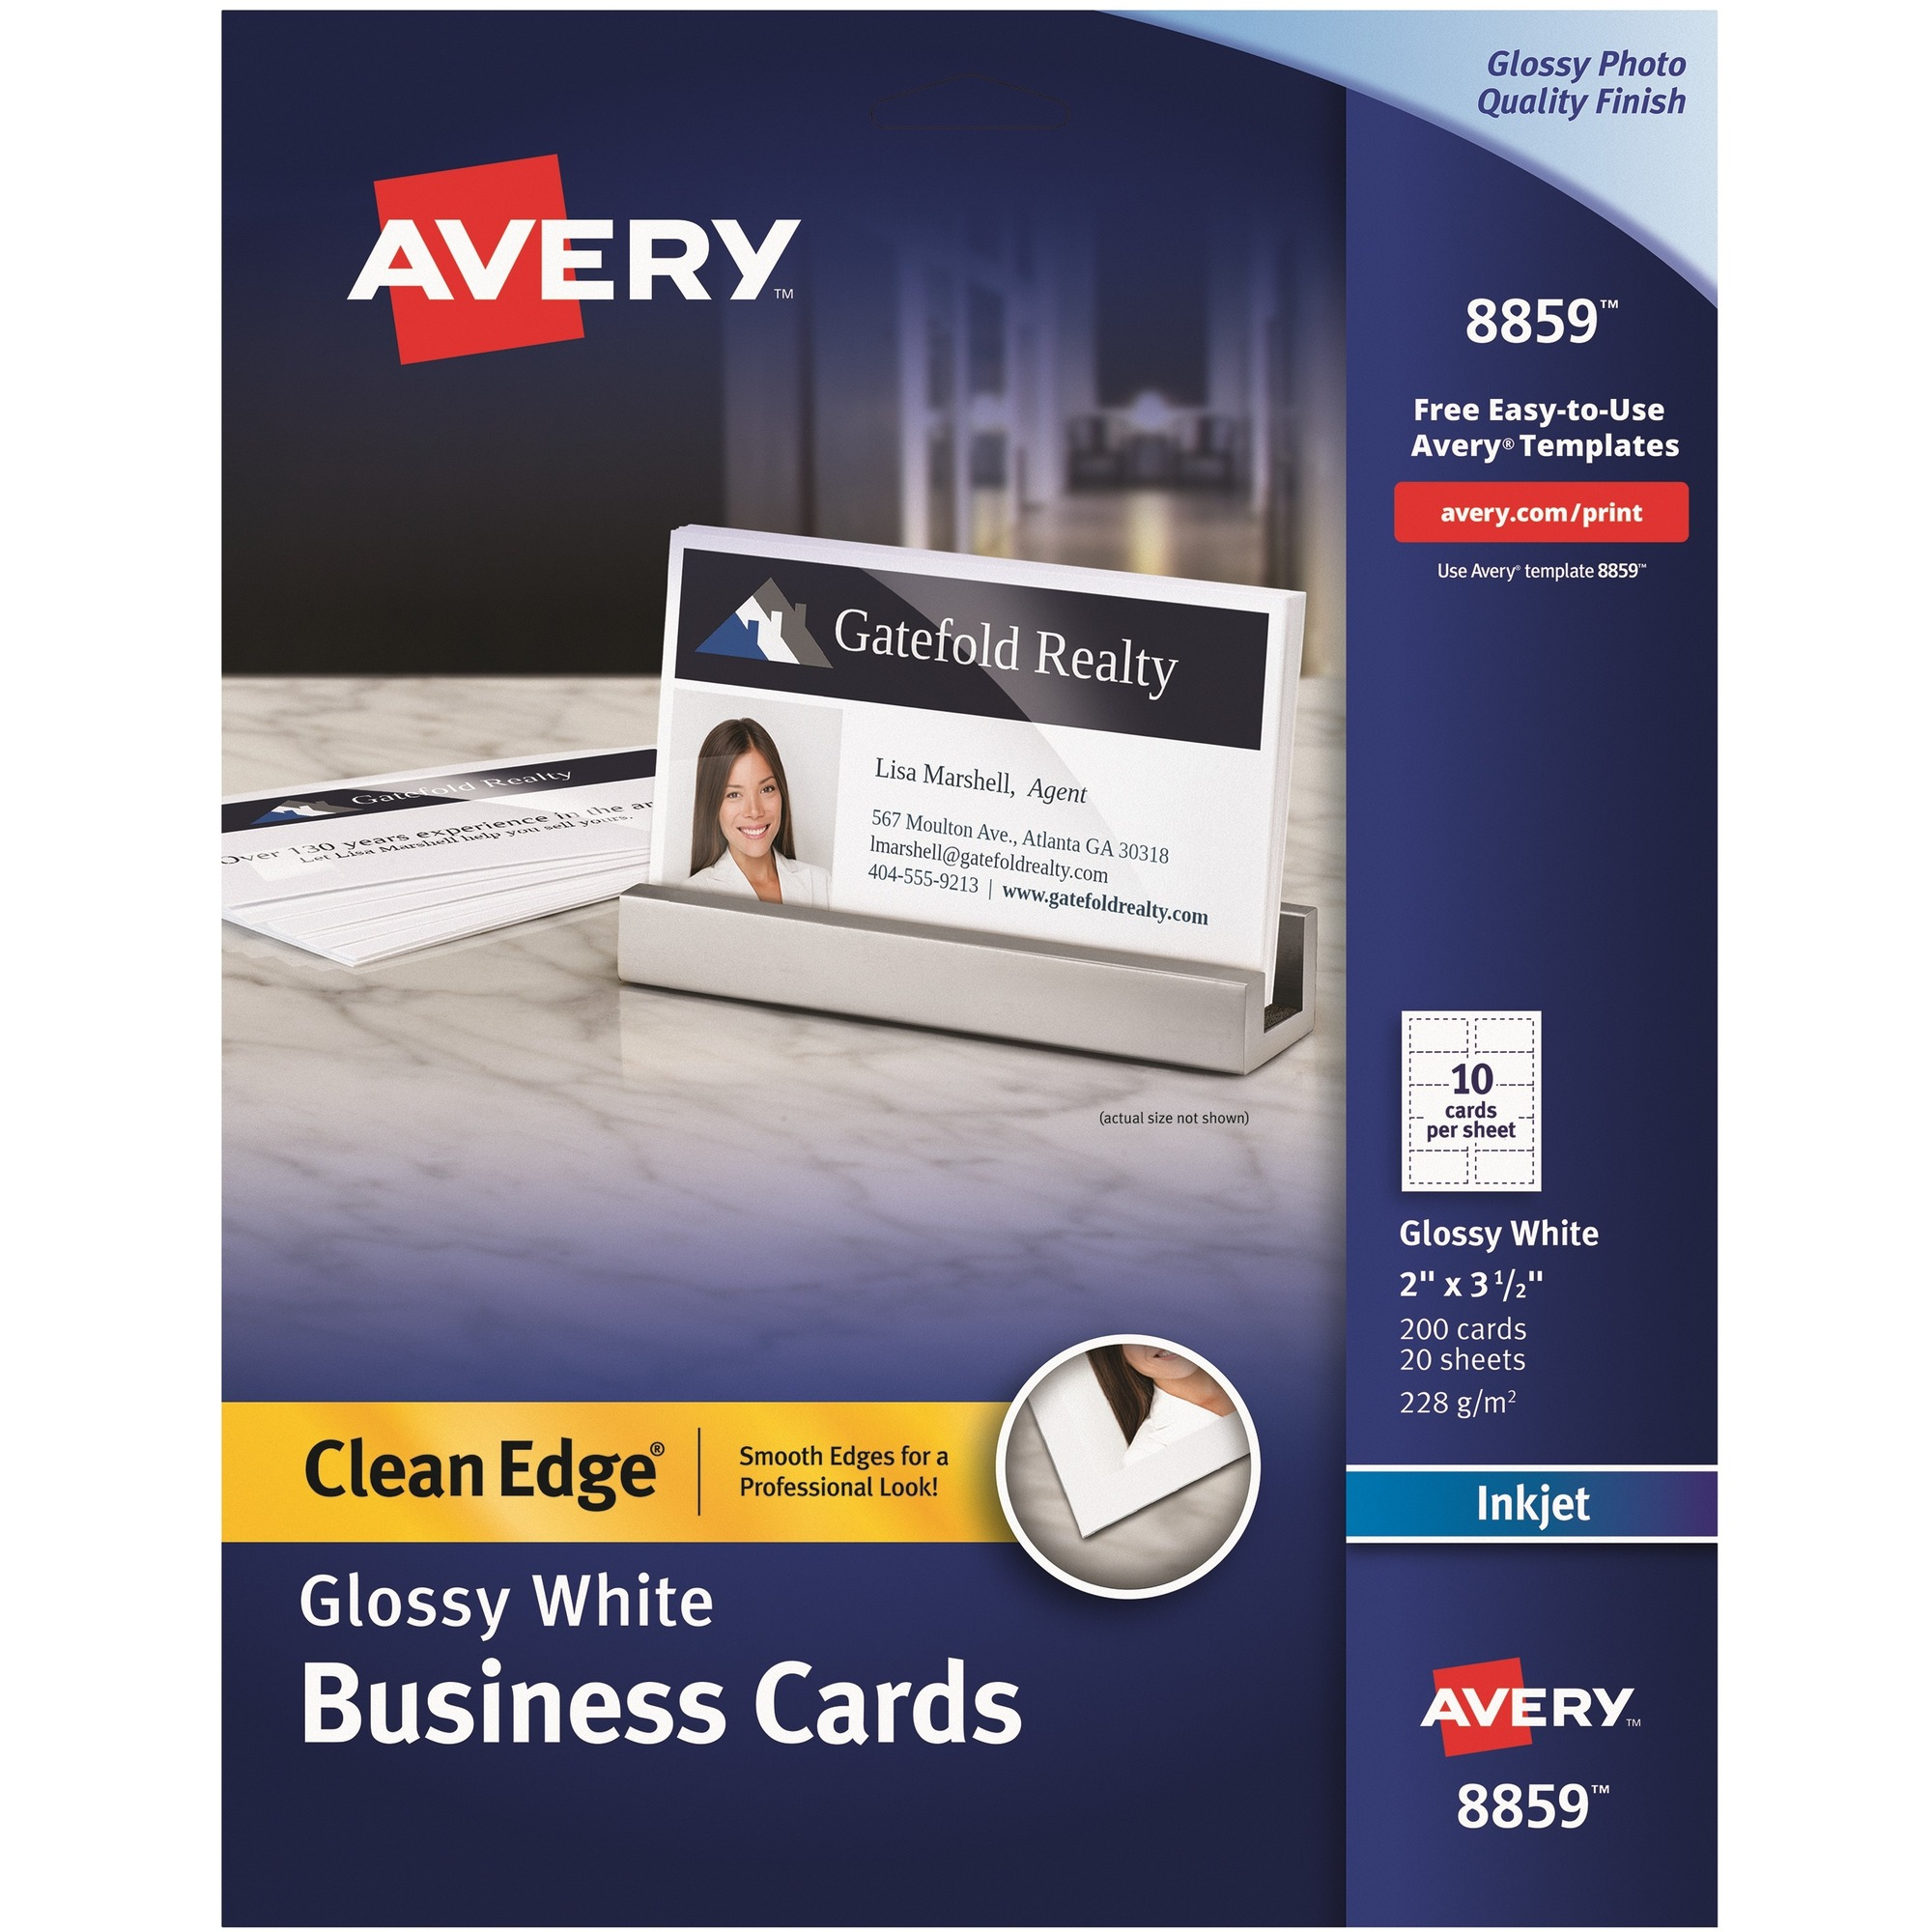 Avery 8859 template microsoft word yelomphonecompany avery 8859 template microsoft word ave8859 avery clean edge inkjet print business card office advantage avery 8859 template microsoft word reheart Gallery